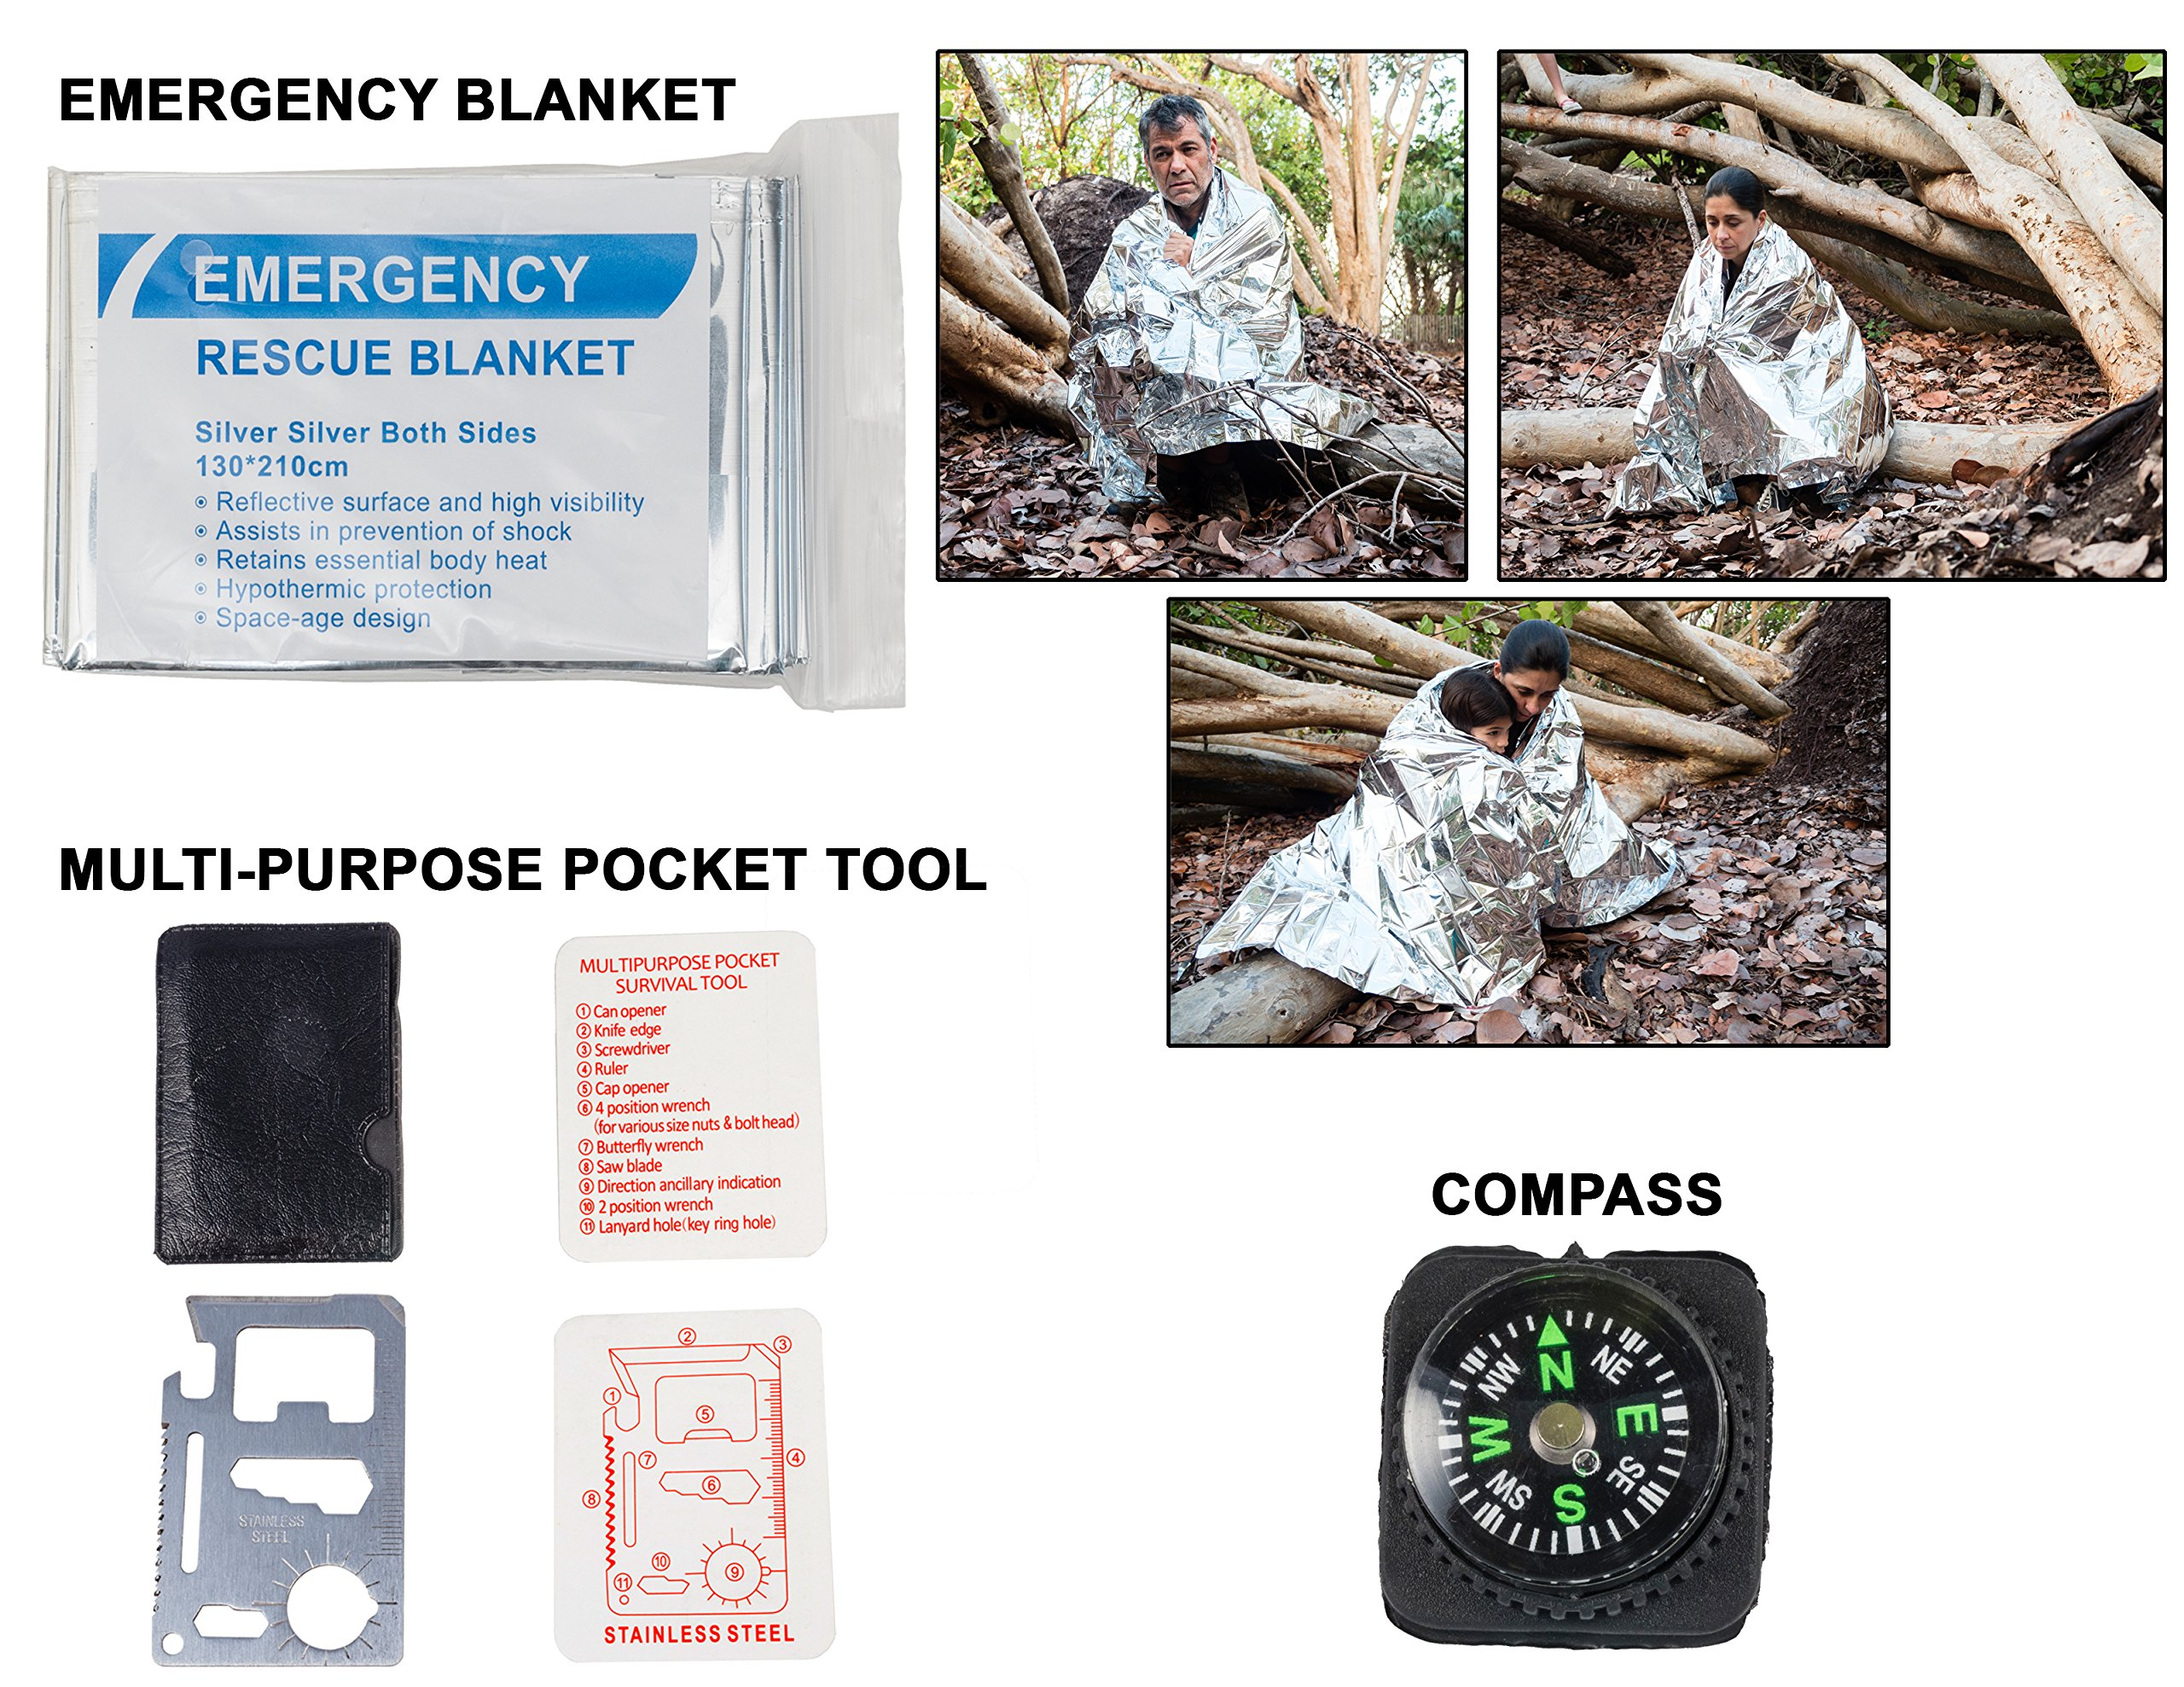 Emergency Survival Kit Bundle.11 Items. Pocket size. Essential Camping Survival Gear, Folding knife, Fire Starter, Compass, Paracord Survival Bracelet, Emergency Blanket, Whistle, Ebook, and more by Booyah Basix (Image #6)